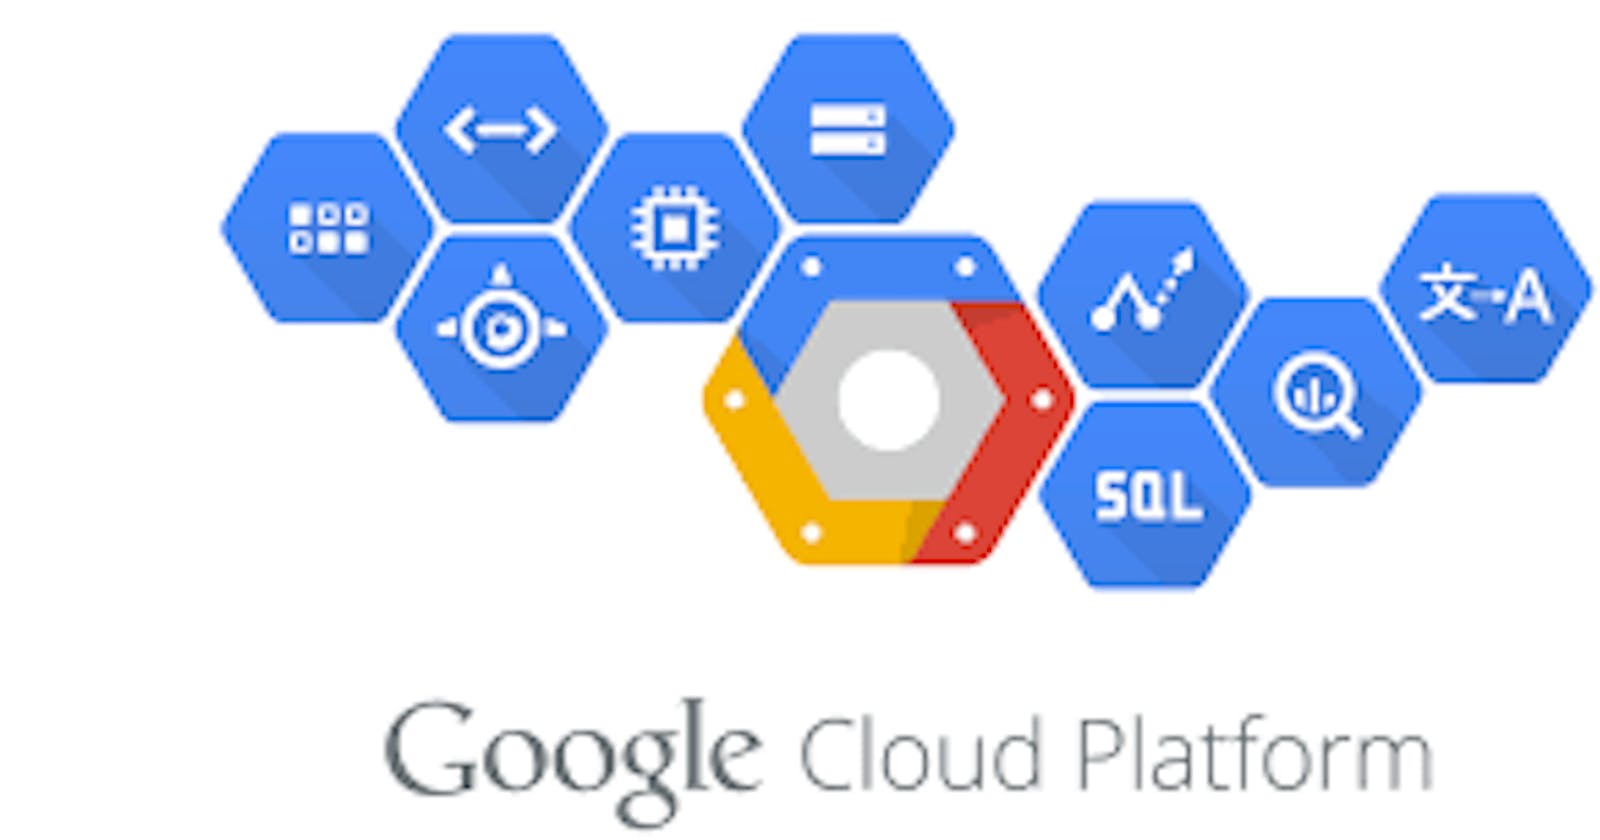 Getting Started with Google Cloud Platform